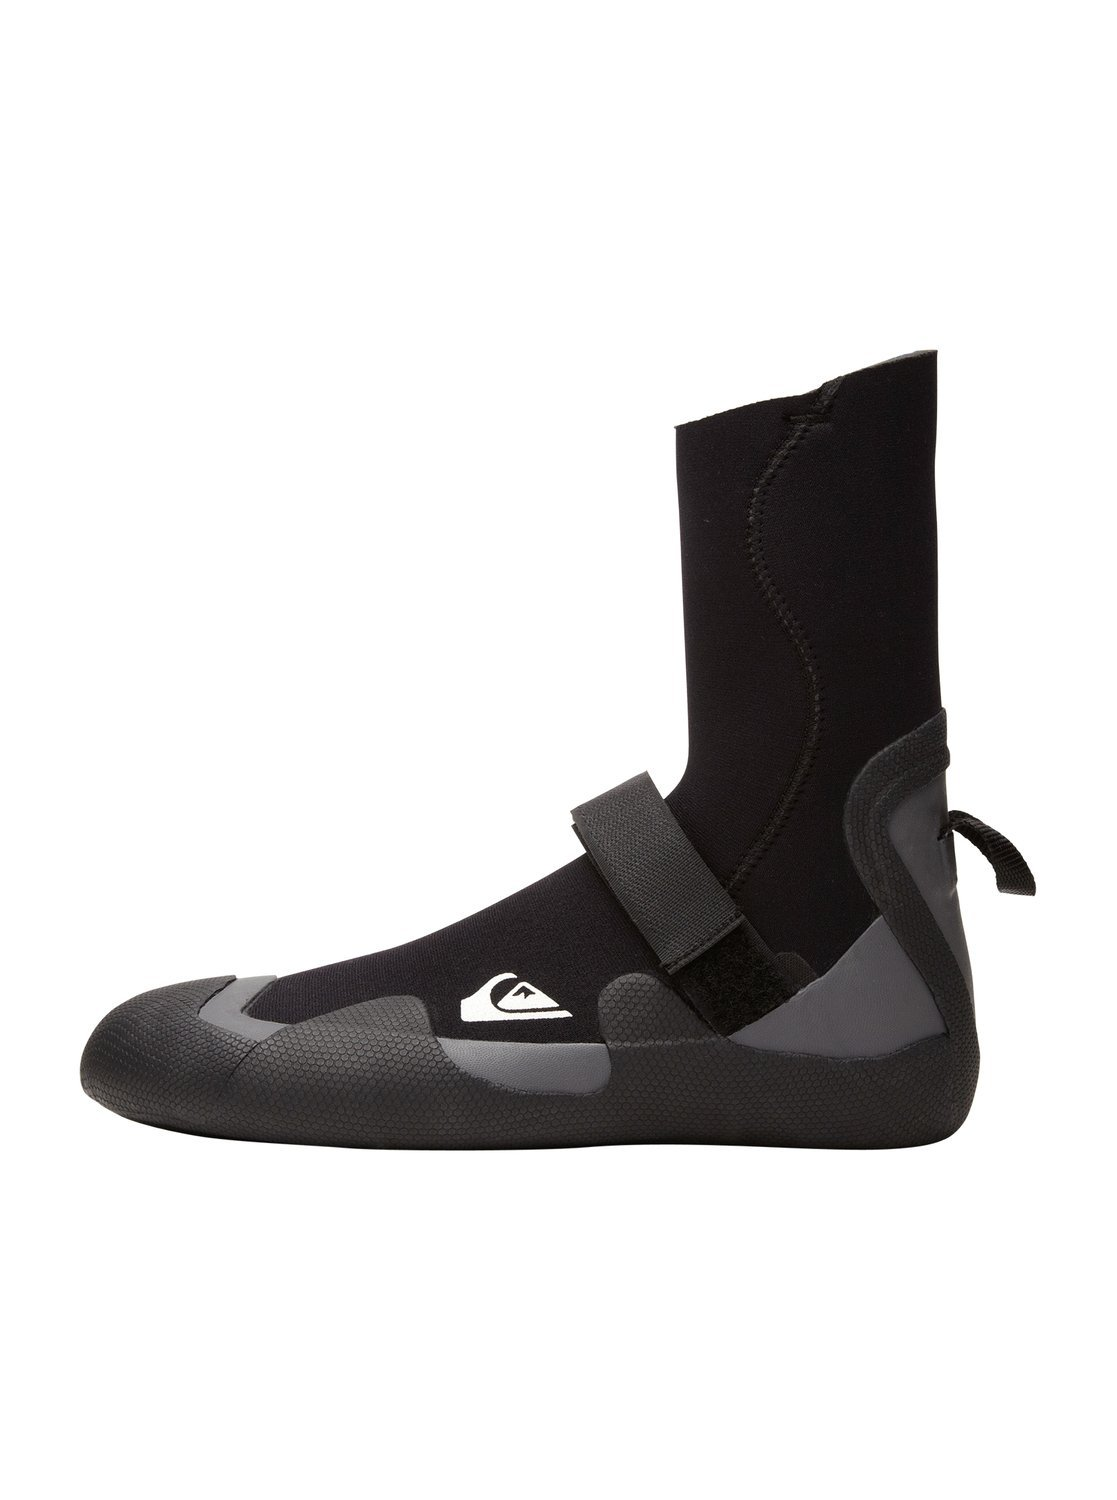 Quiksilver Syncro 3mm Surf Booties